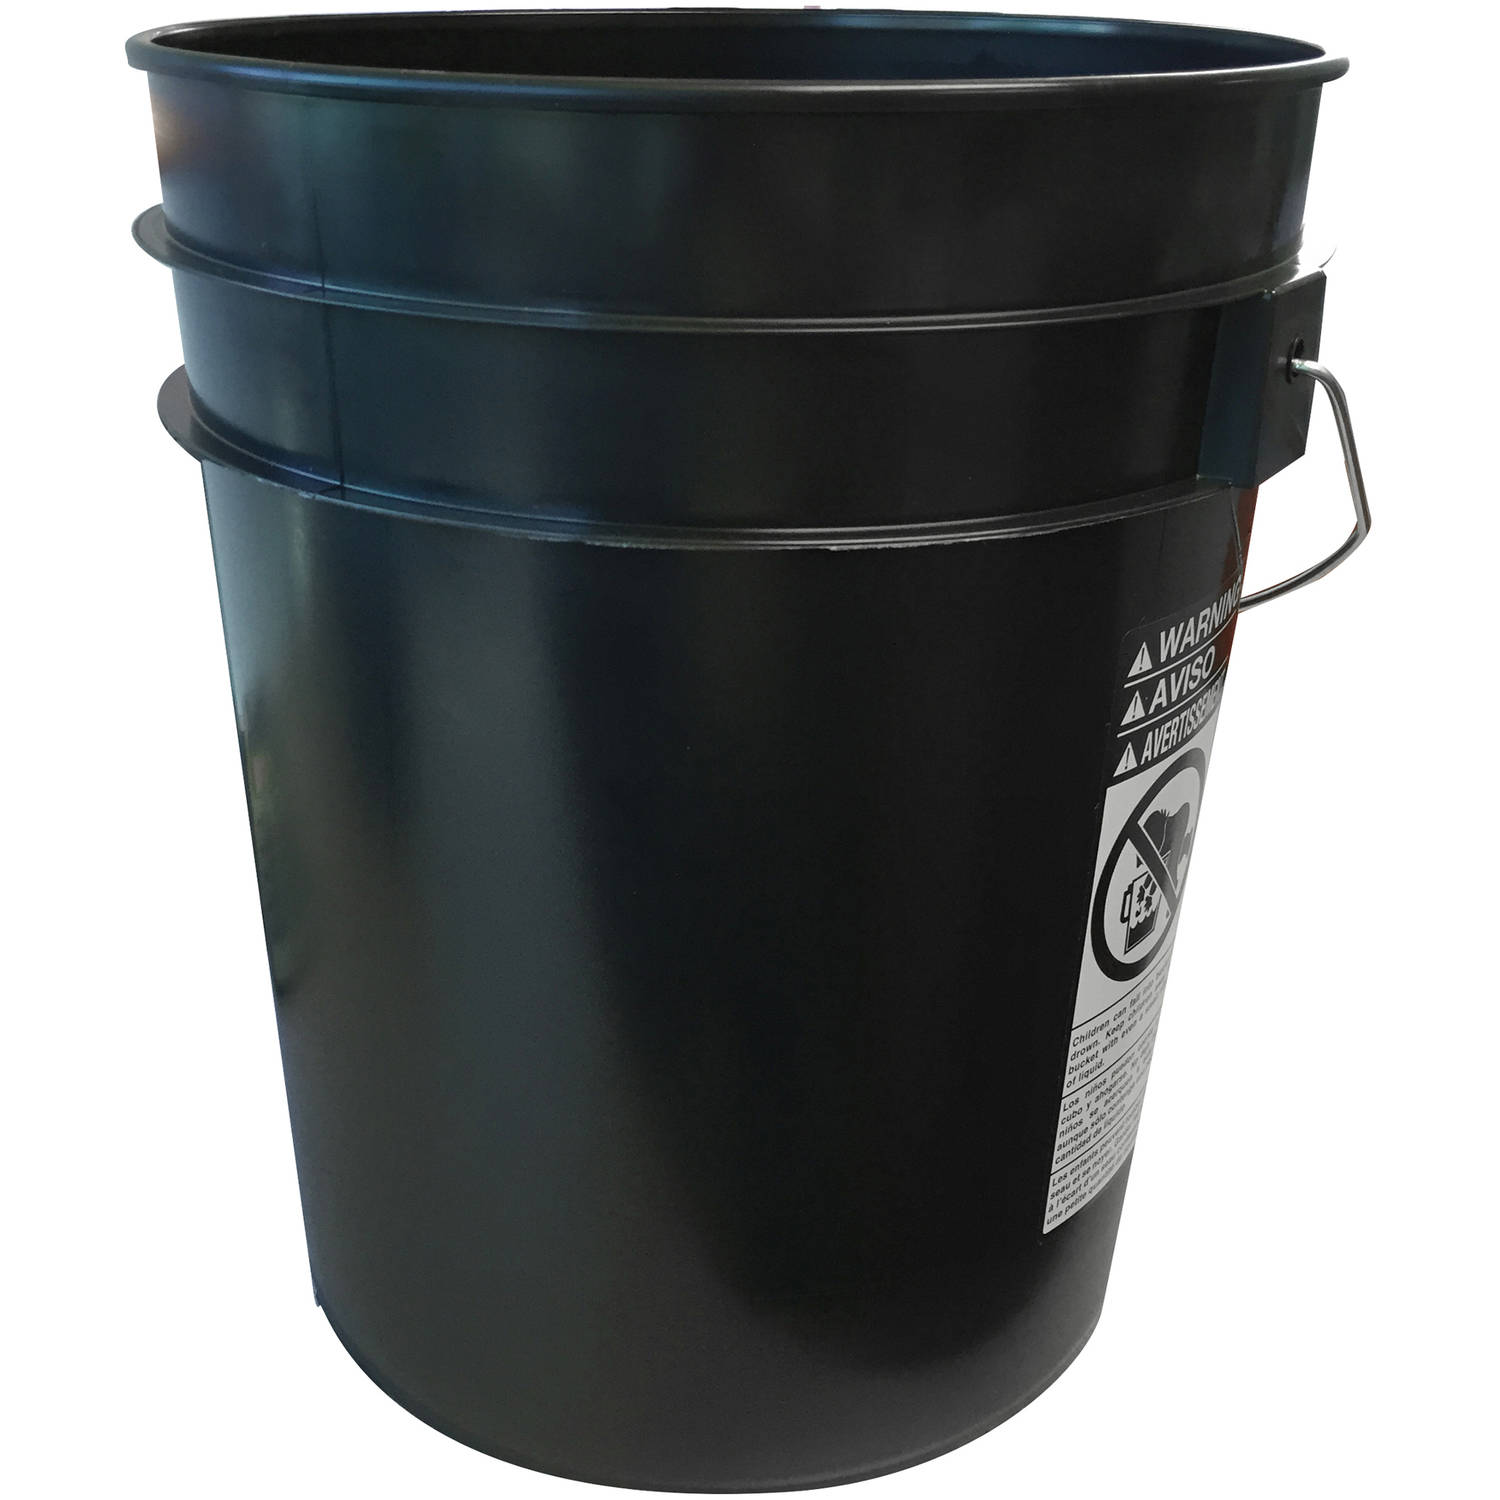 5 Gallon Bucket Home Depot 10 Pack Bucket Pail Set 5 Gallon Heavy Duty Reinforced